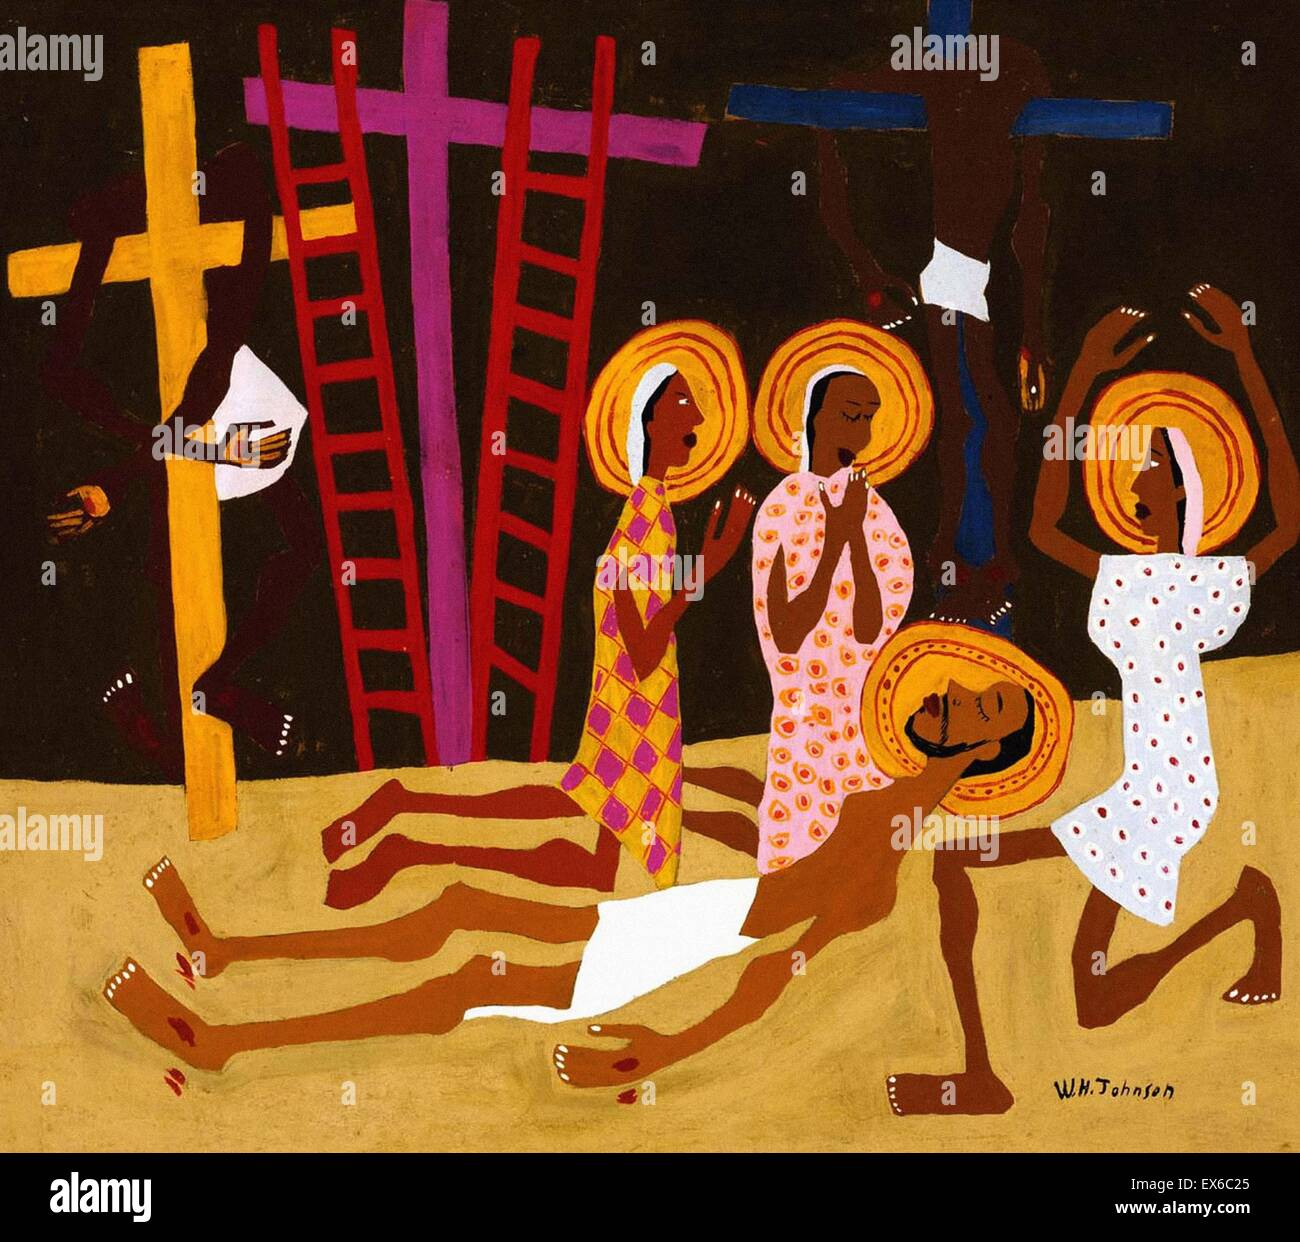 William H. Johnson  Lamentation - Stock Image